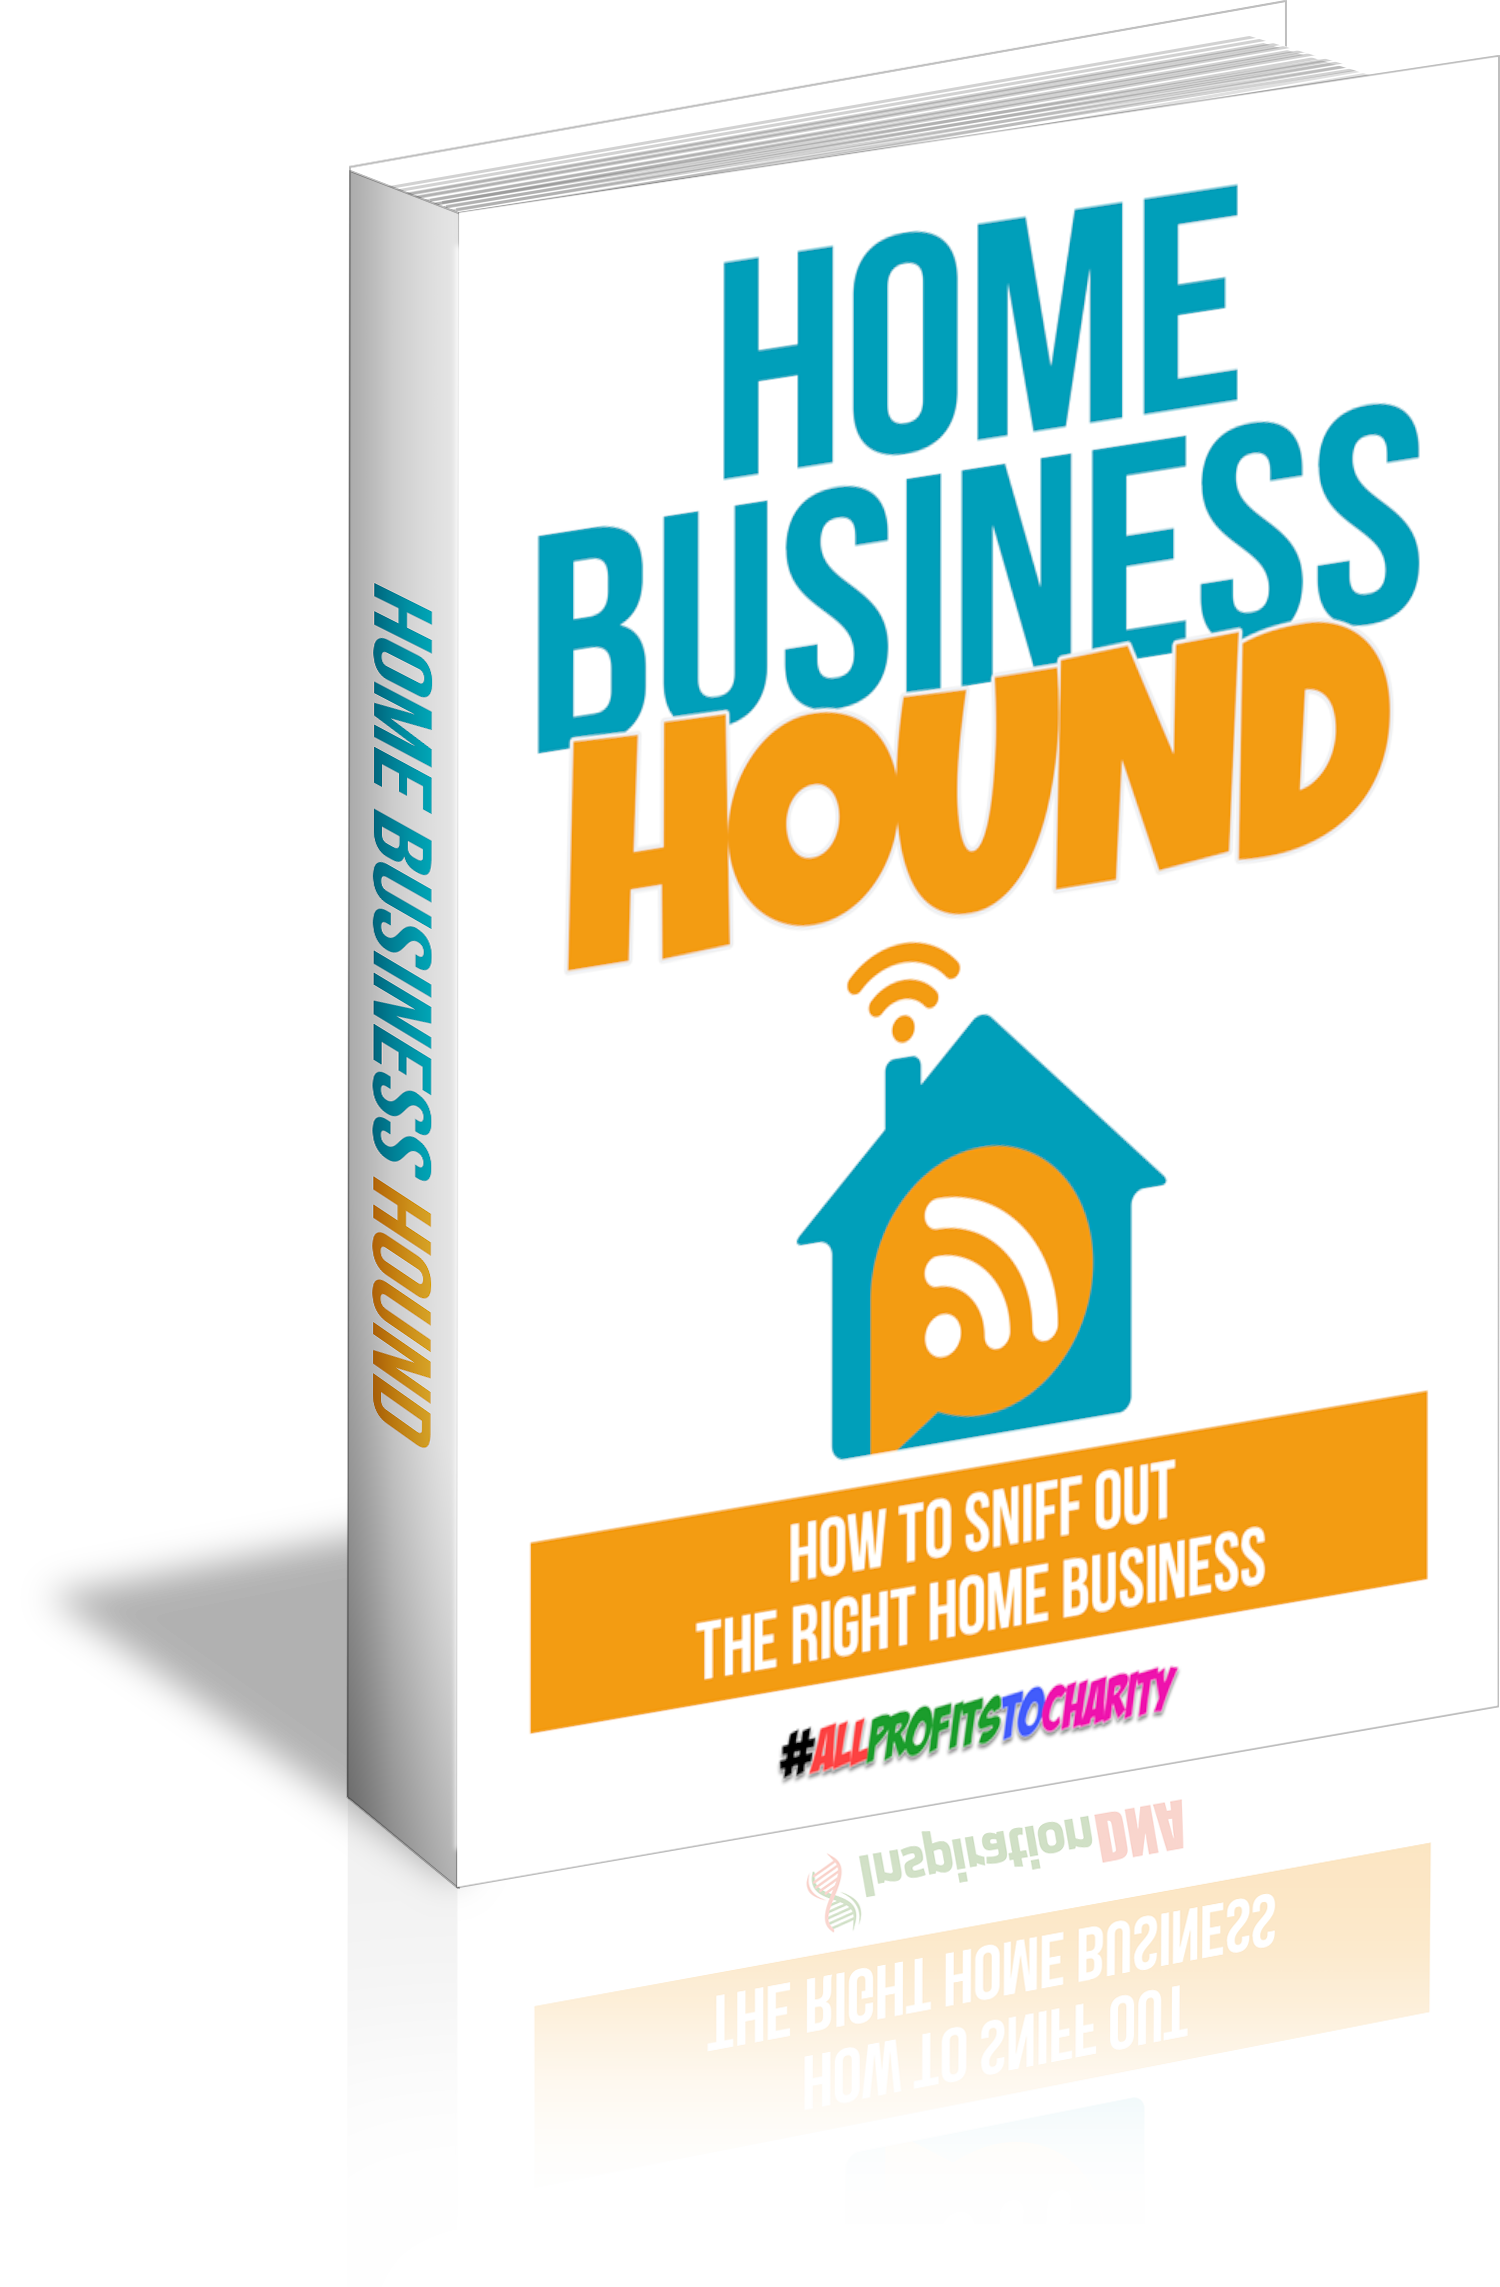 Home Business Hound cover